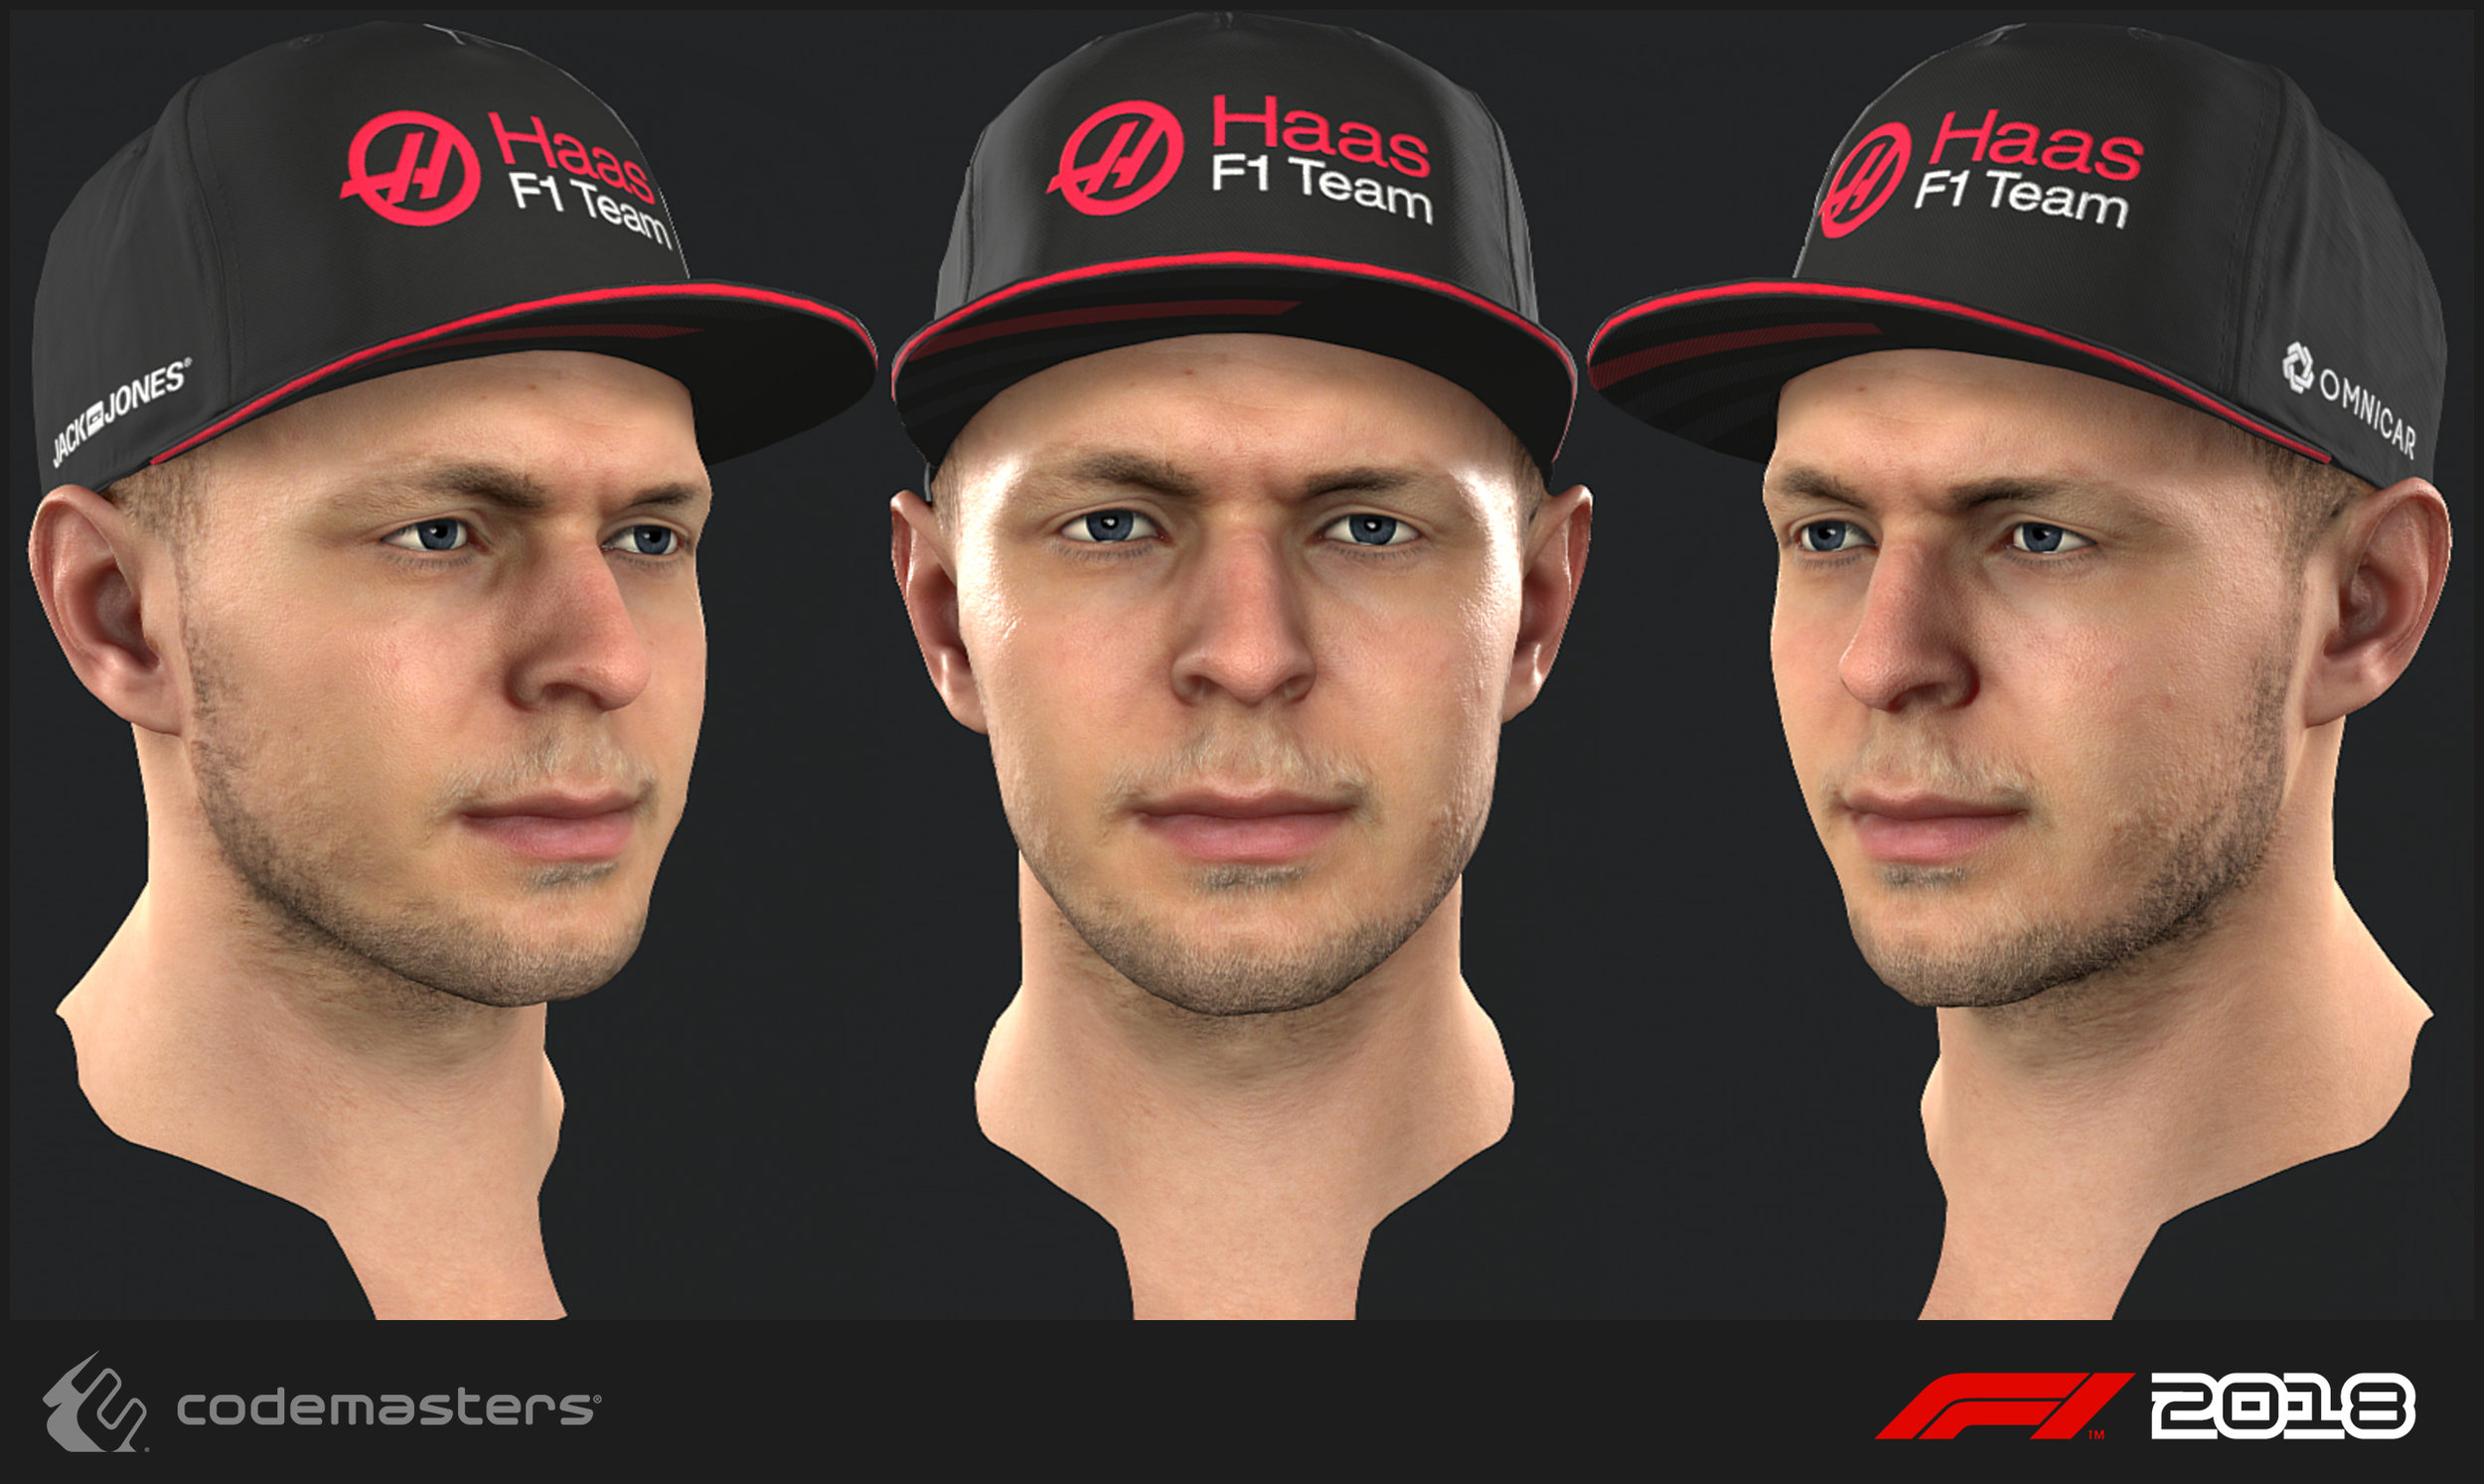 Kevin Magnussen. Responsibilities: high poly creation, texture creation for the head. My lead Mark Hancock was responsible for a 2018 update pass on the mesh and textures.